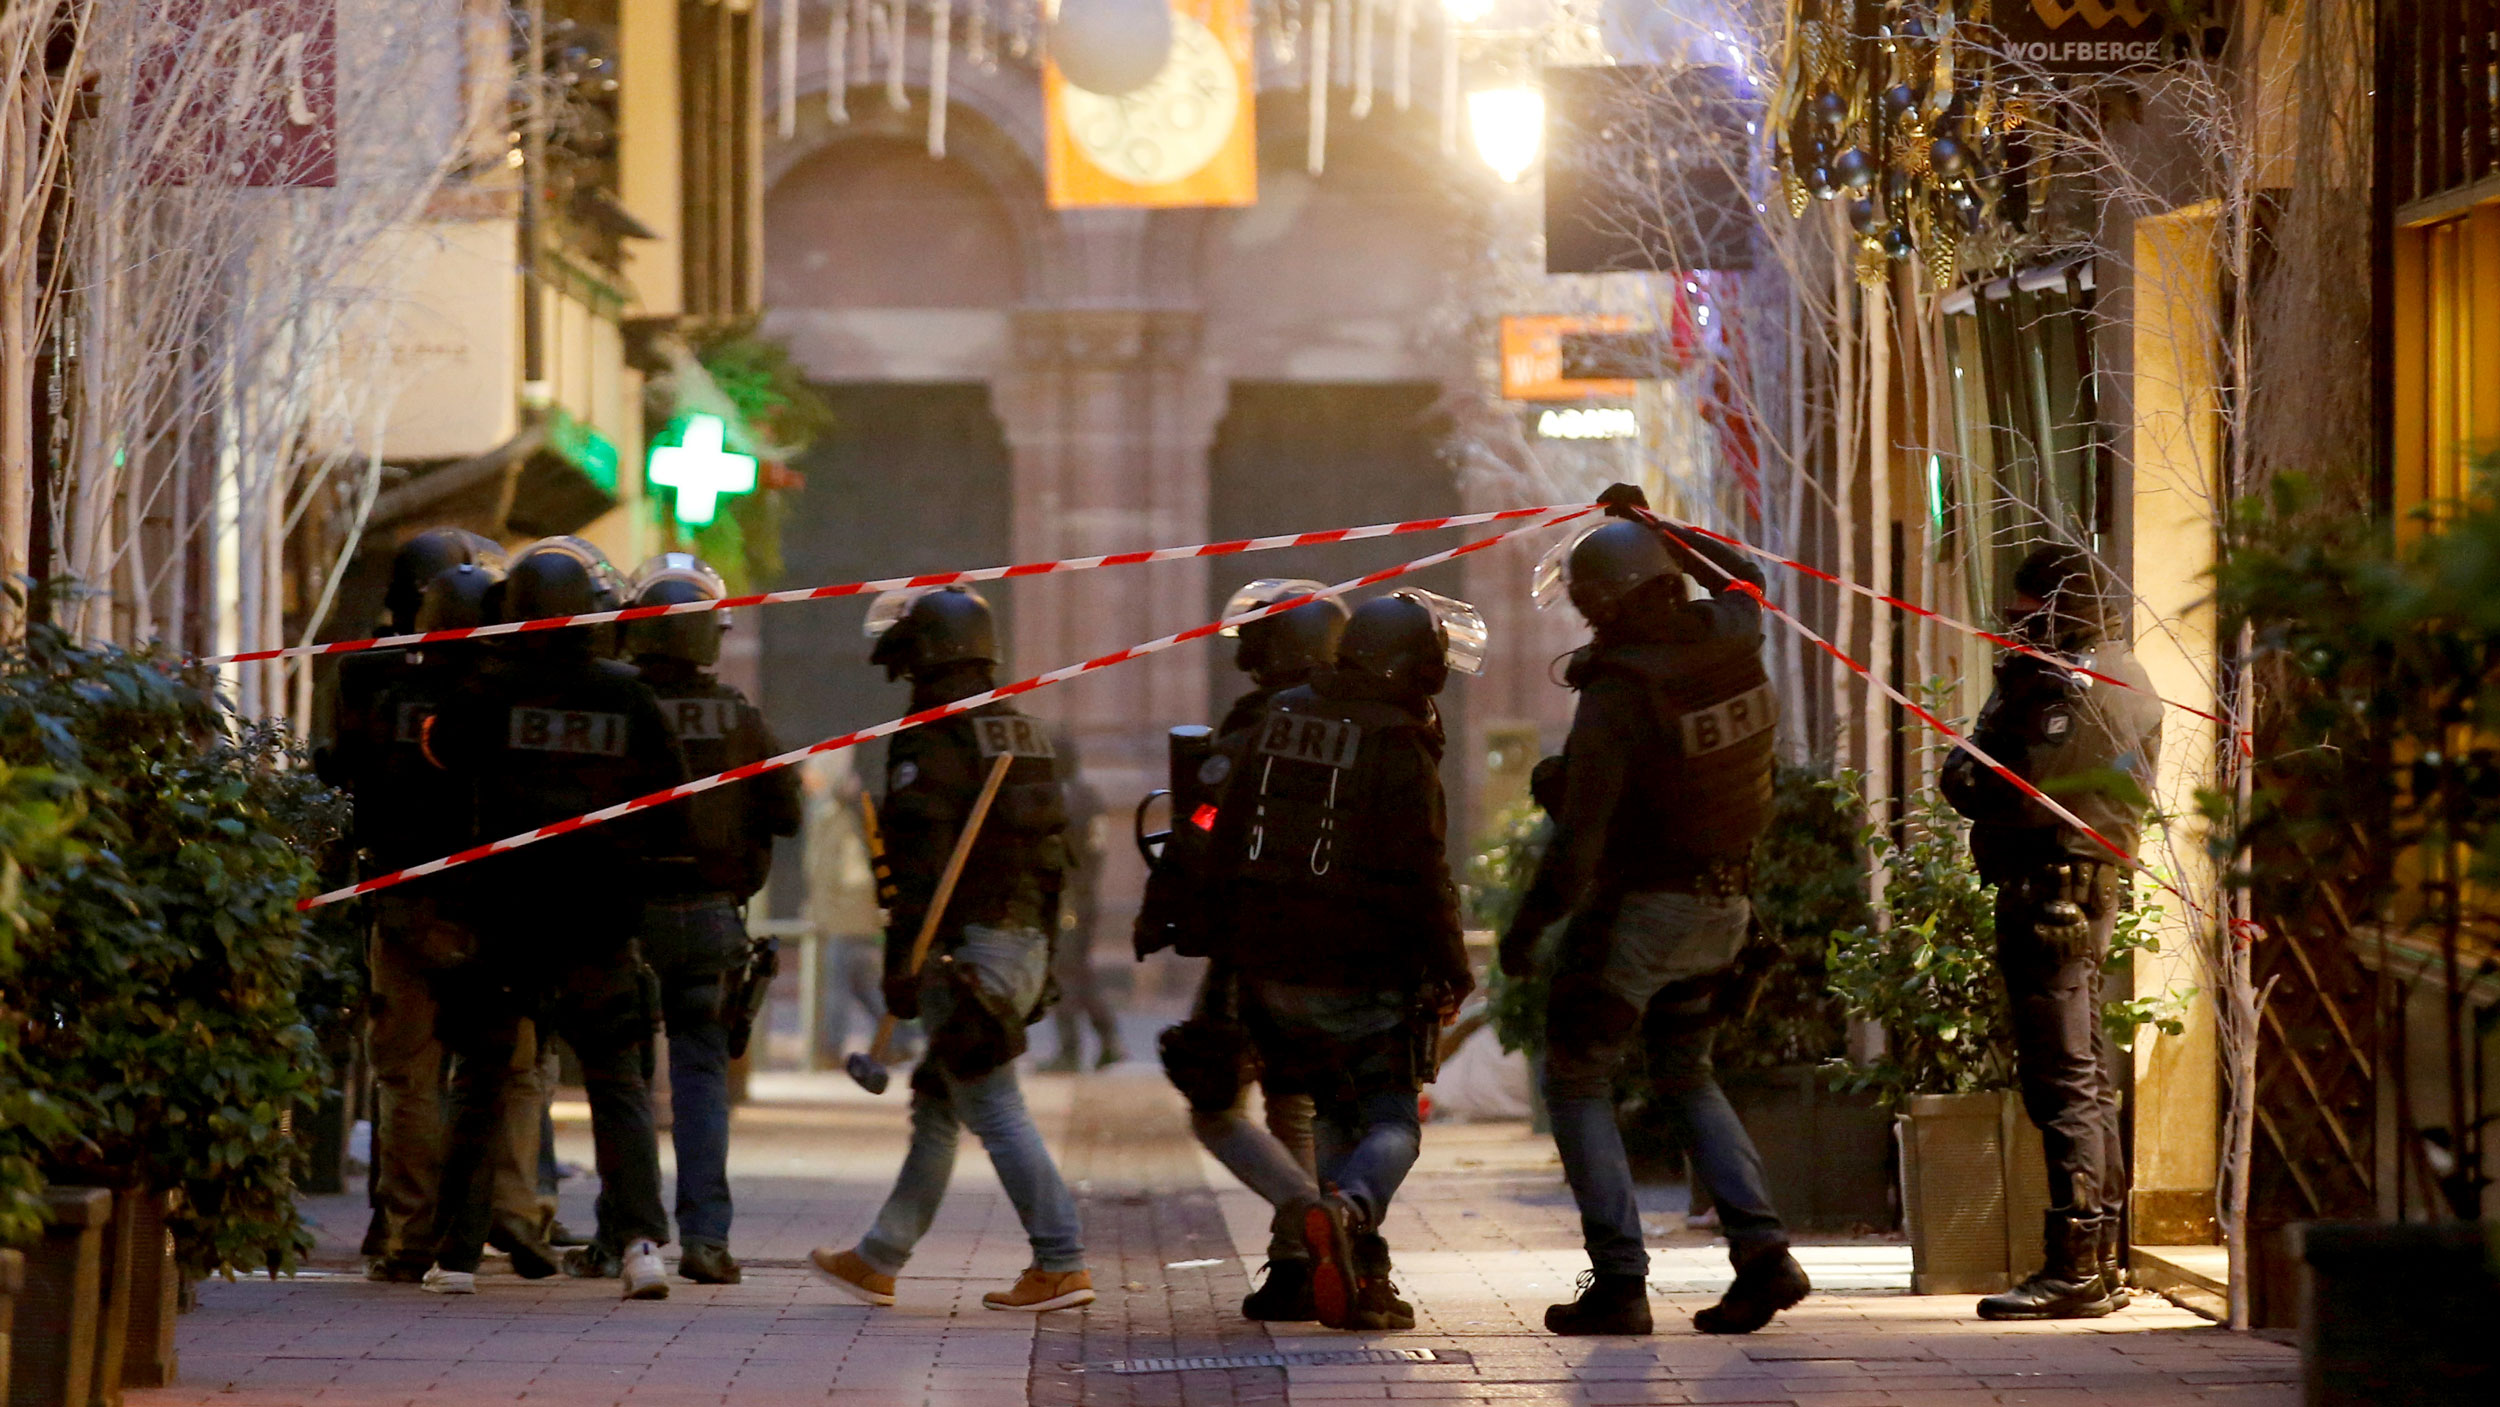 Police in riot gear lift a red tape to enter a crime scene